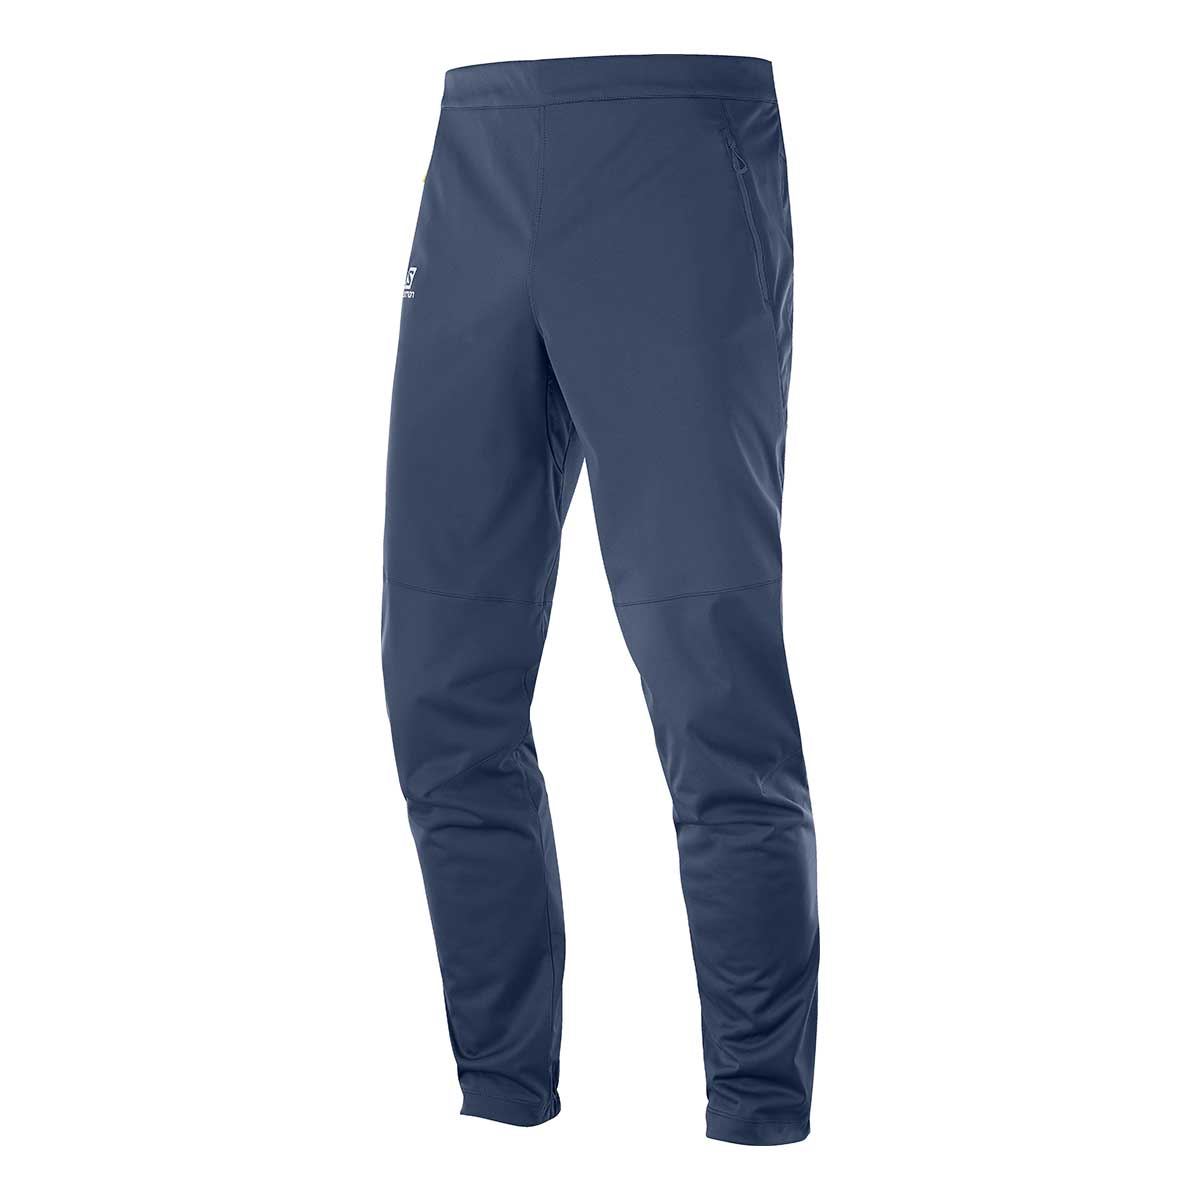 Salomon Men's RS Softshell Pant in Night Sky